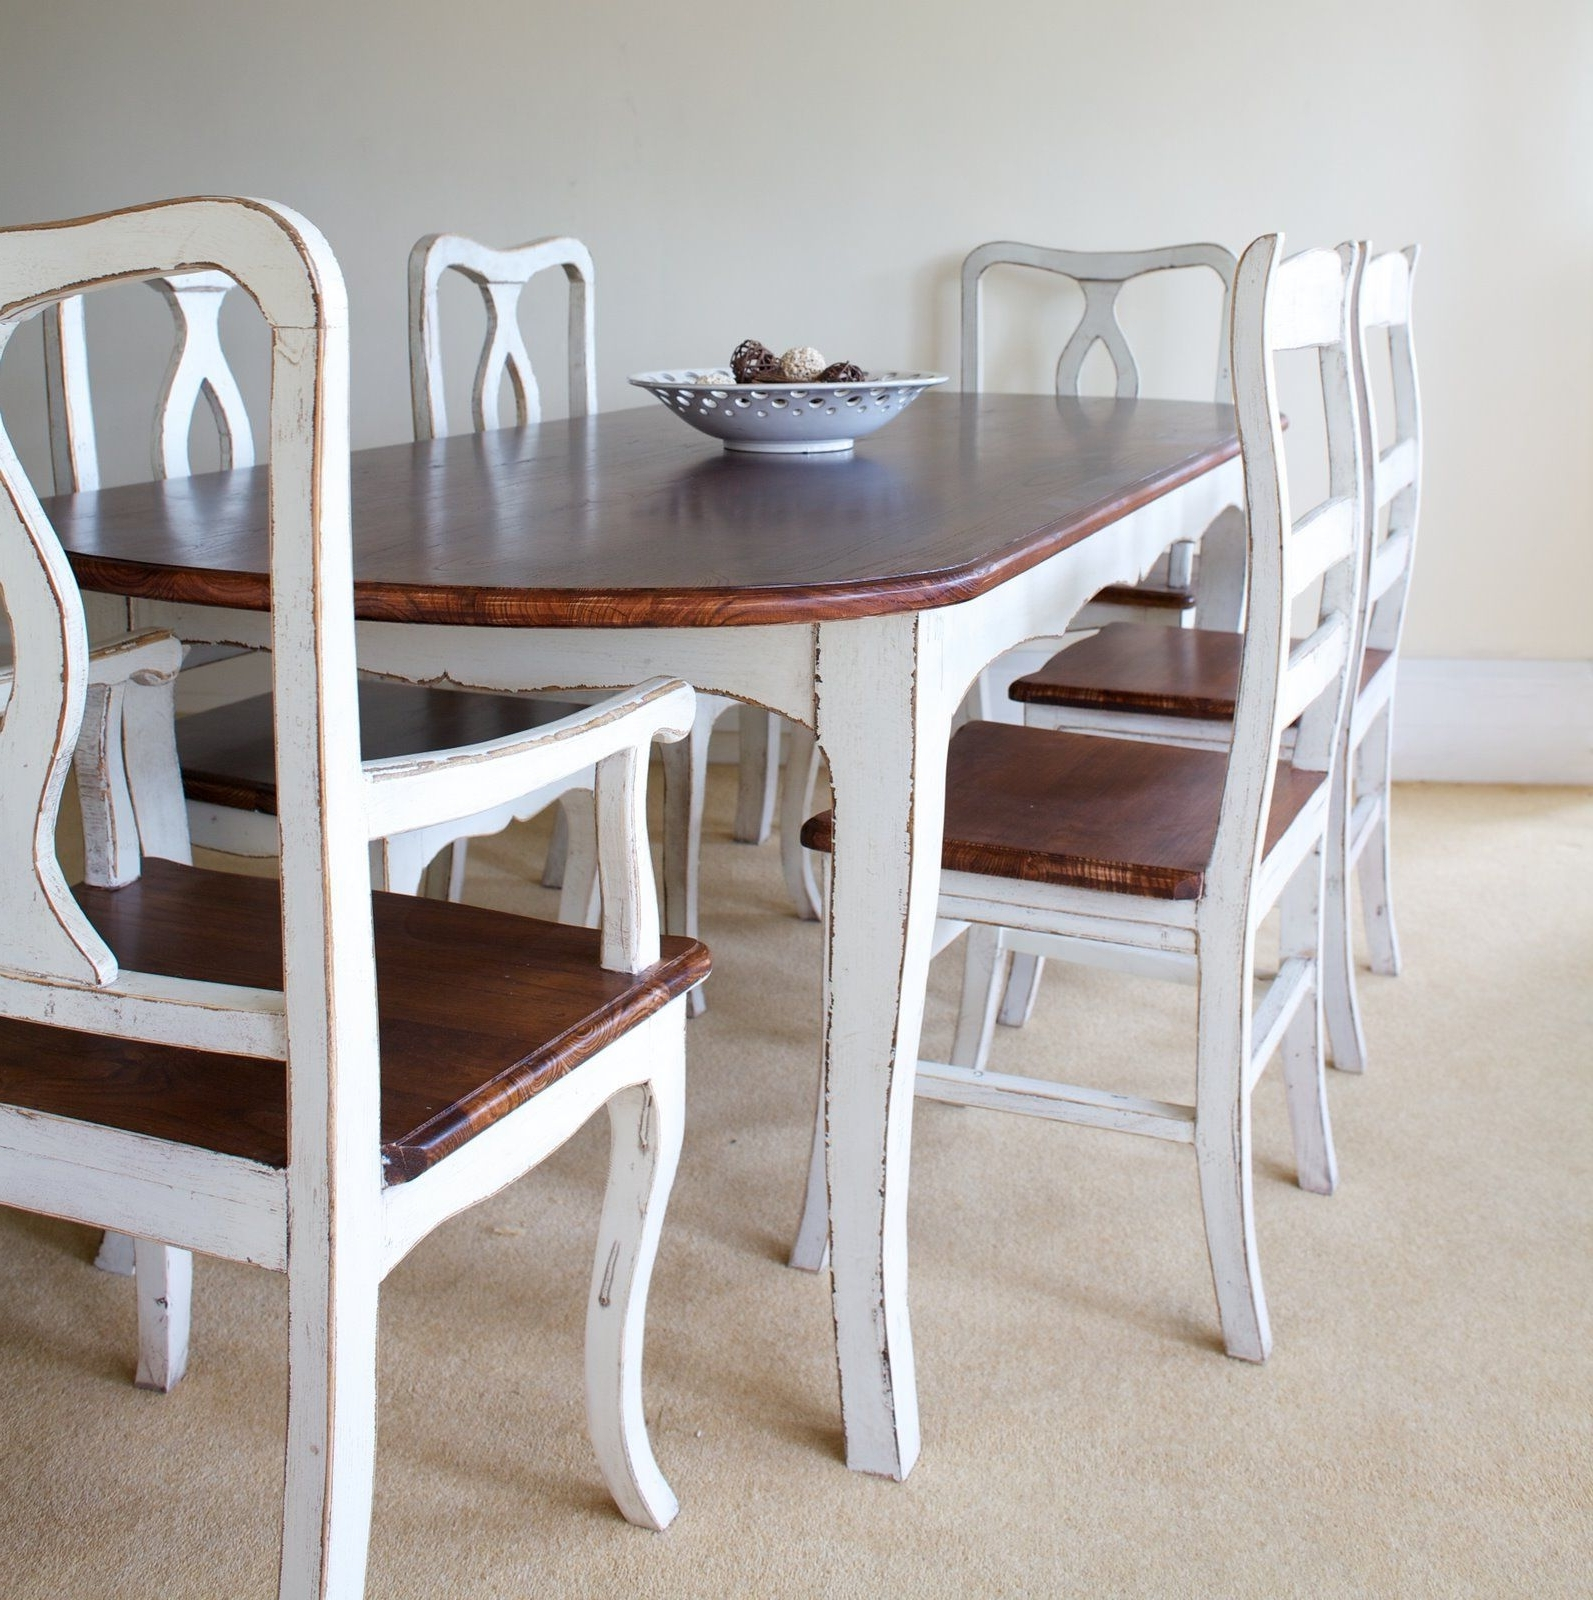 Shabby Dining Tables And Chairs Within Widely Used Furniture : Palejay Diy Shabby Chic Dining Table Part Shabby Chic (View 23 of 25)